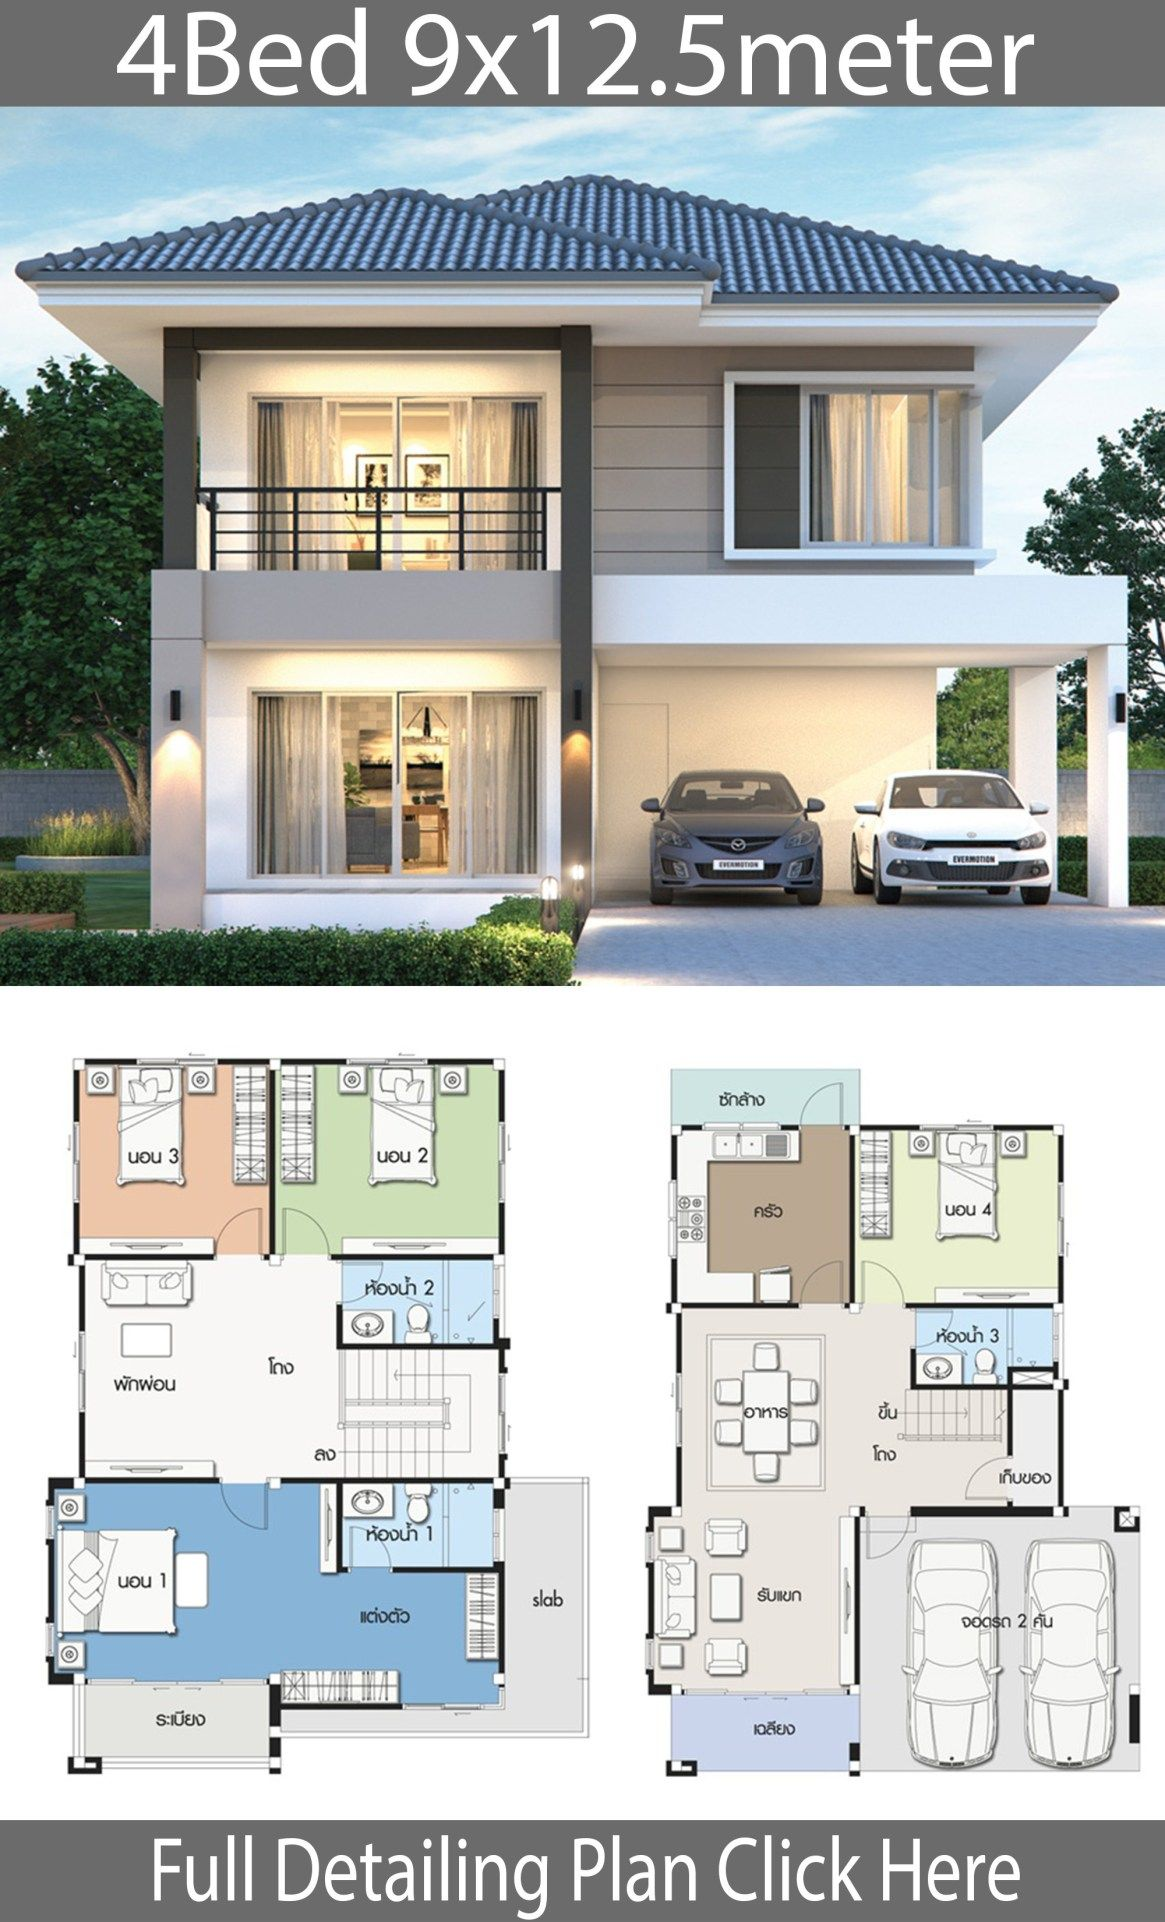 House Design Plan 9x12 5m With 4 Bedrooms Duplex House Design 2 Storey House Design House Layout Plans